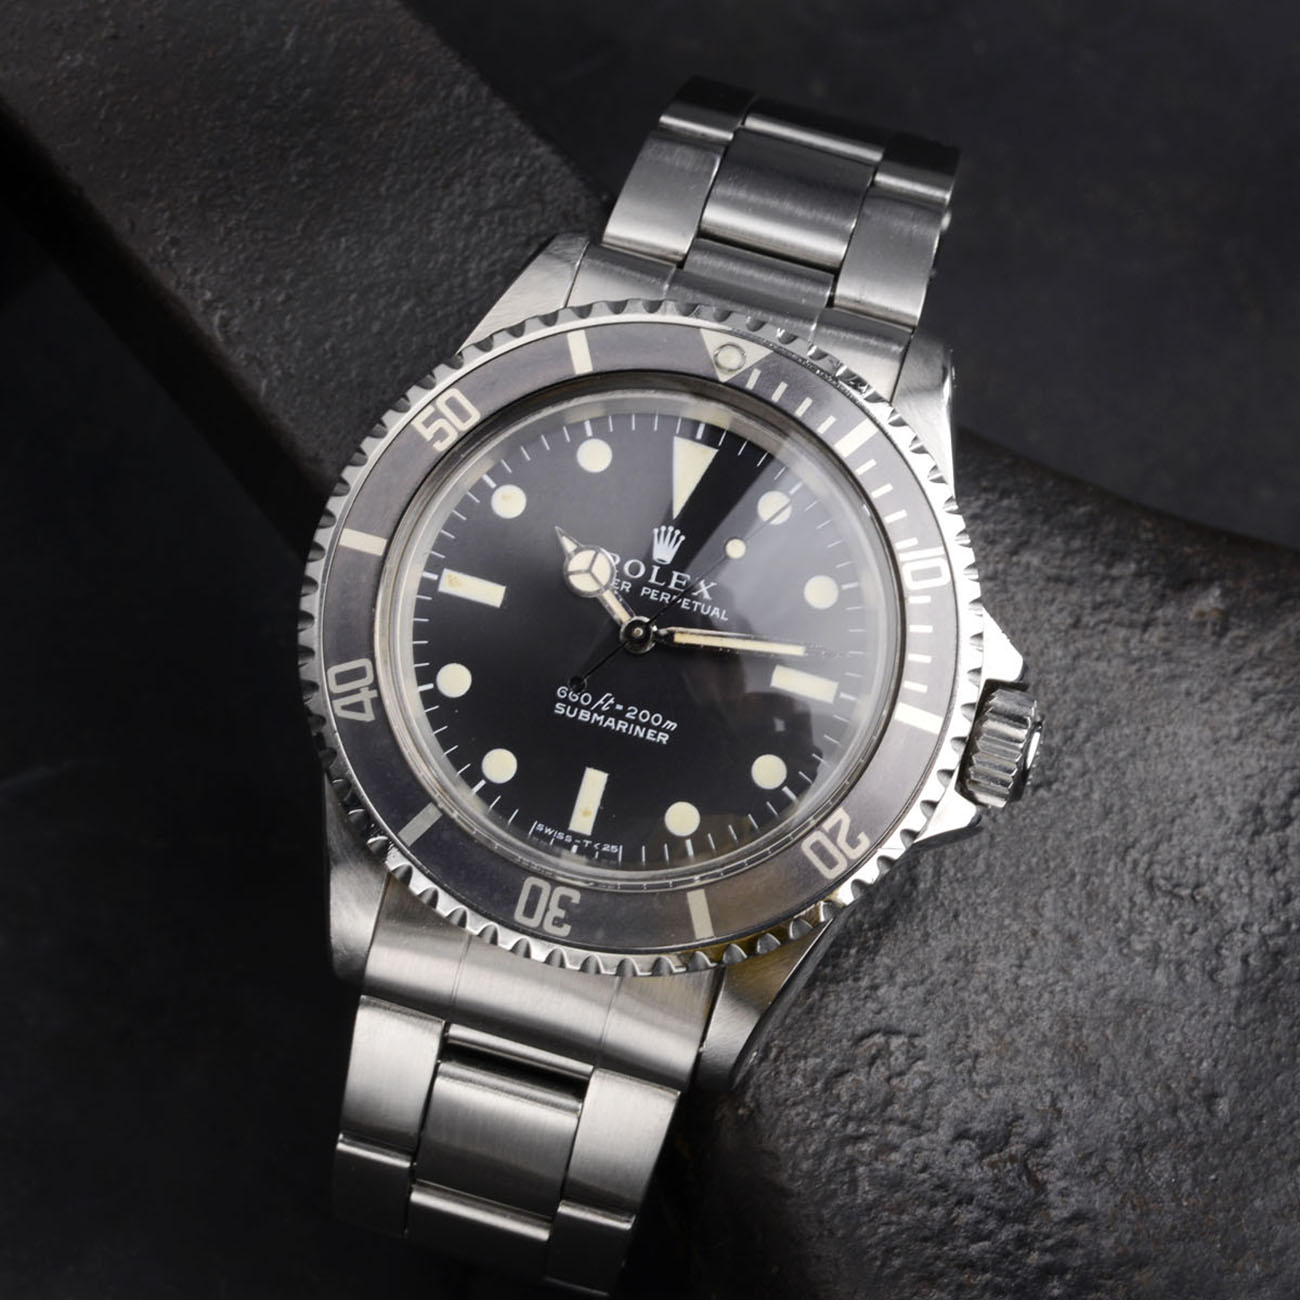 Vintage Rolex 5513 Submariner Love - Article at Bulang and Sons - Non Serif Dial